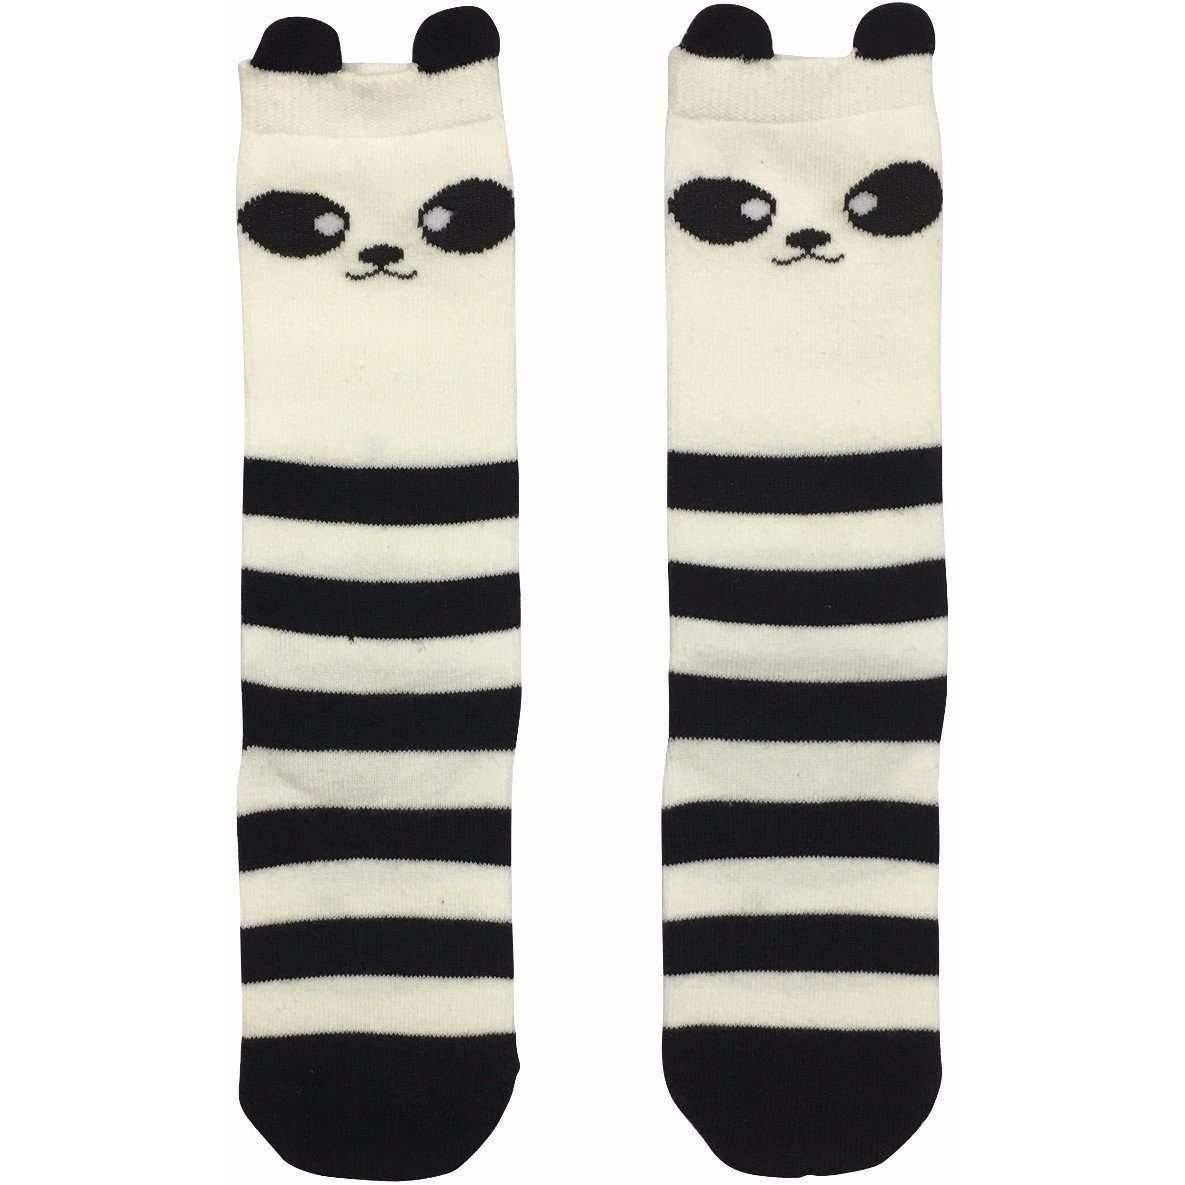 Adorable Essentials, Cat, Mouse and Panda Socks,socks & tights,Adorable Essentials, LLC